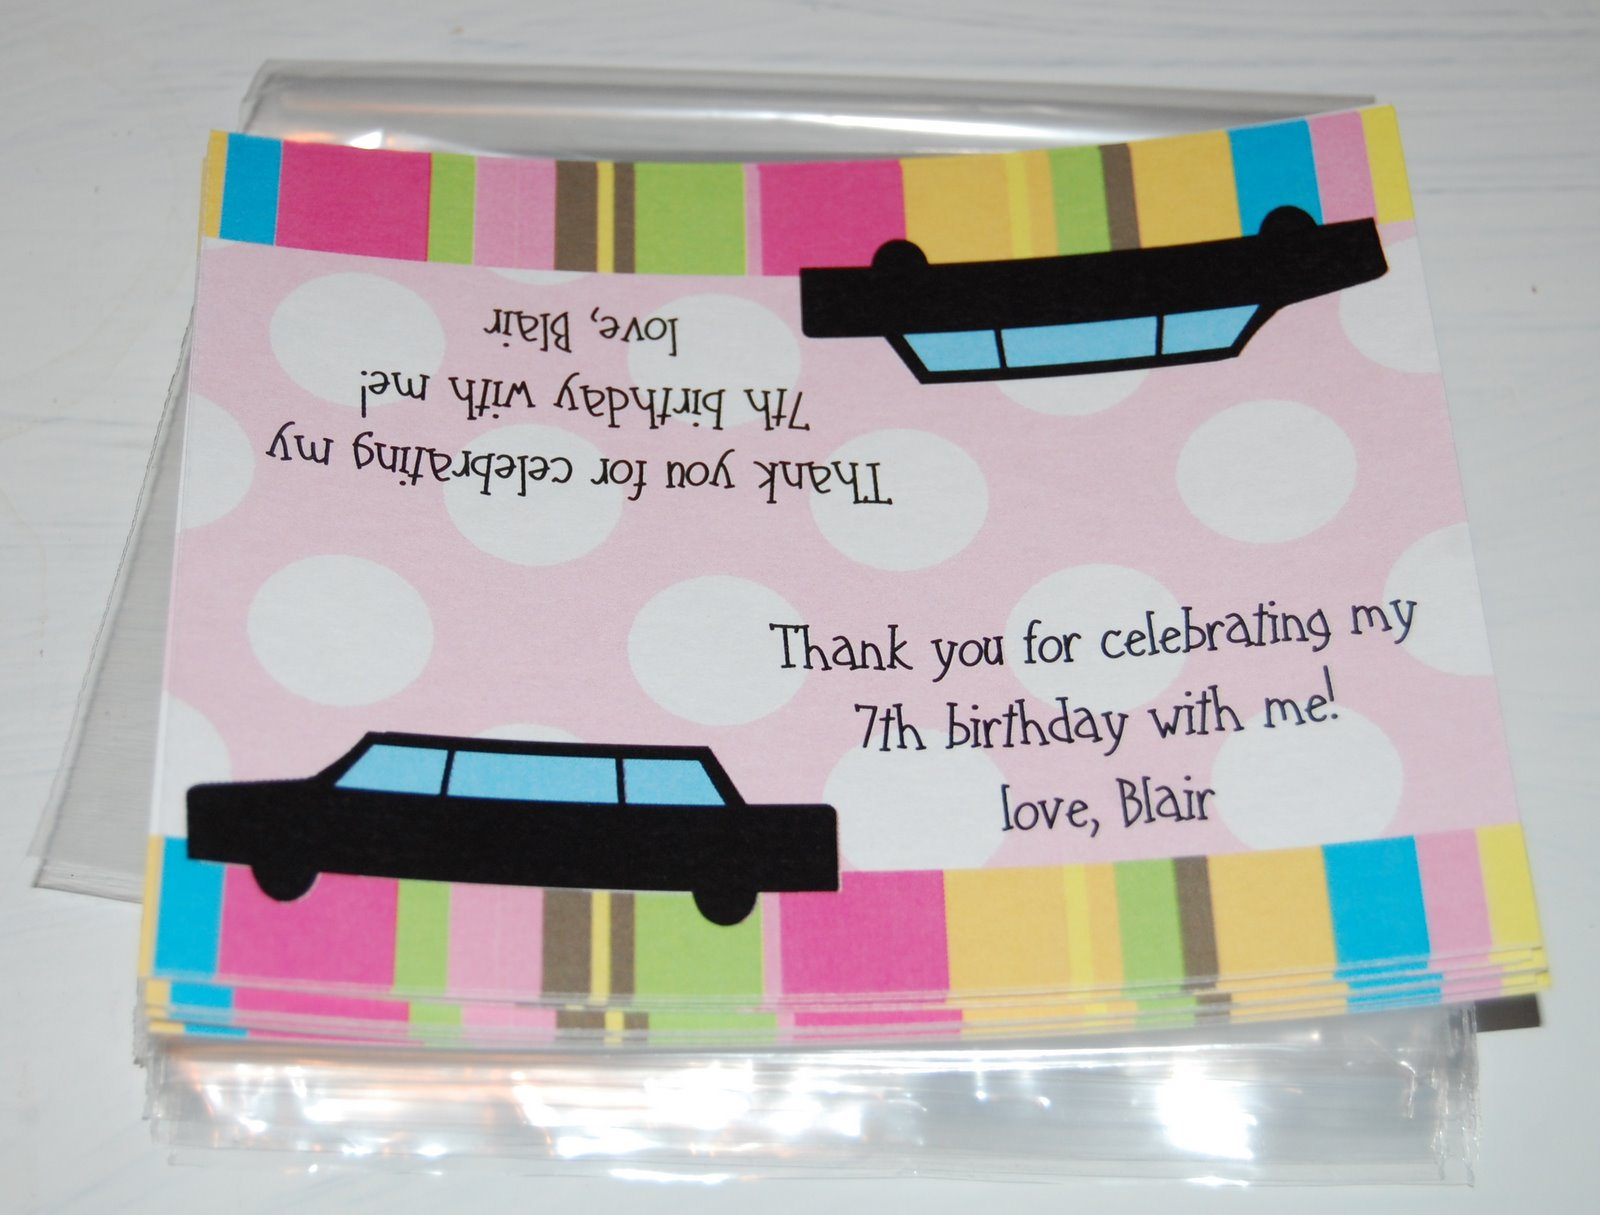 Baby face design girls limo ride birthday invitation party favor bags 100 each 12 minimum stopboris Image collections